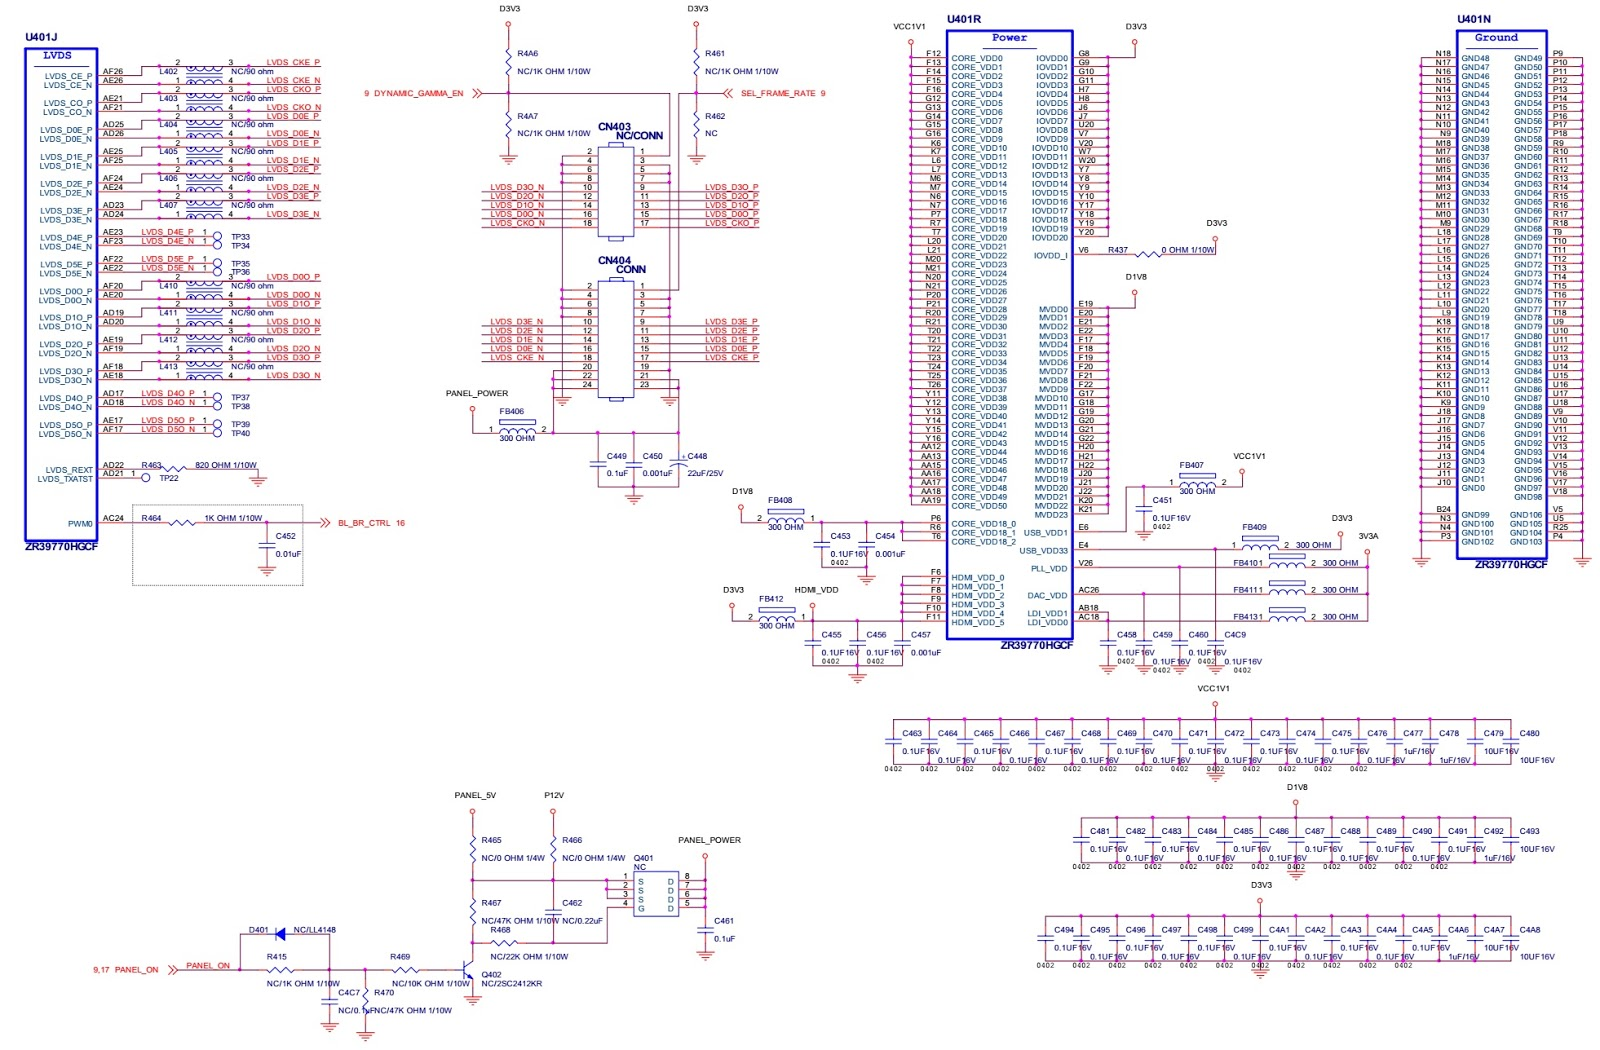 manguonblog insignia ns lcd32 09 32 u2033lcd tv power smps and lvds lcd tv schematic diagram 32 inch insignia tv schematic circuit diagram [ 1600 x 1050 Pixel ]